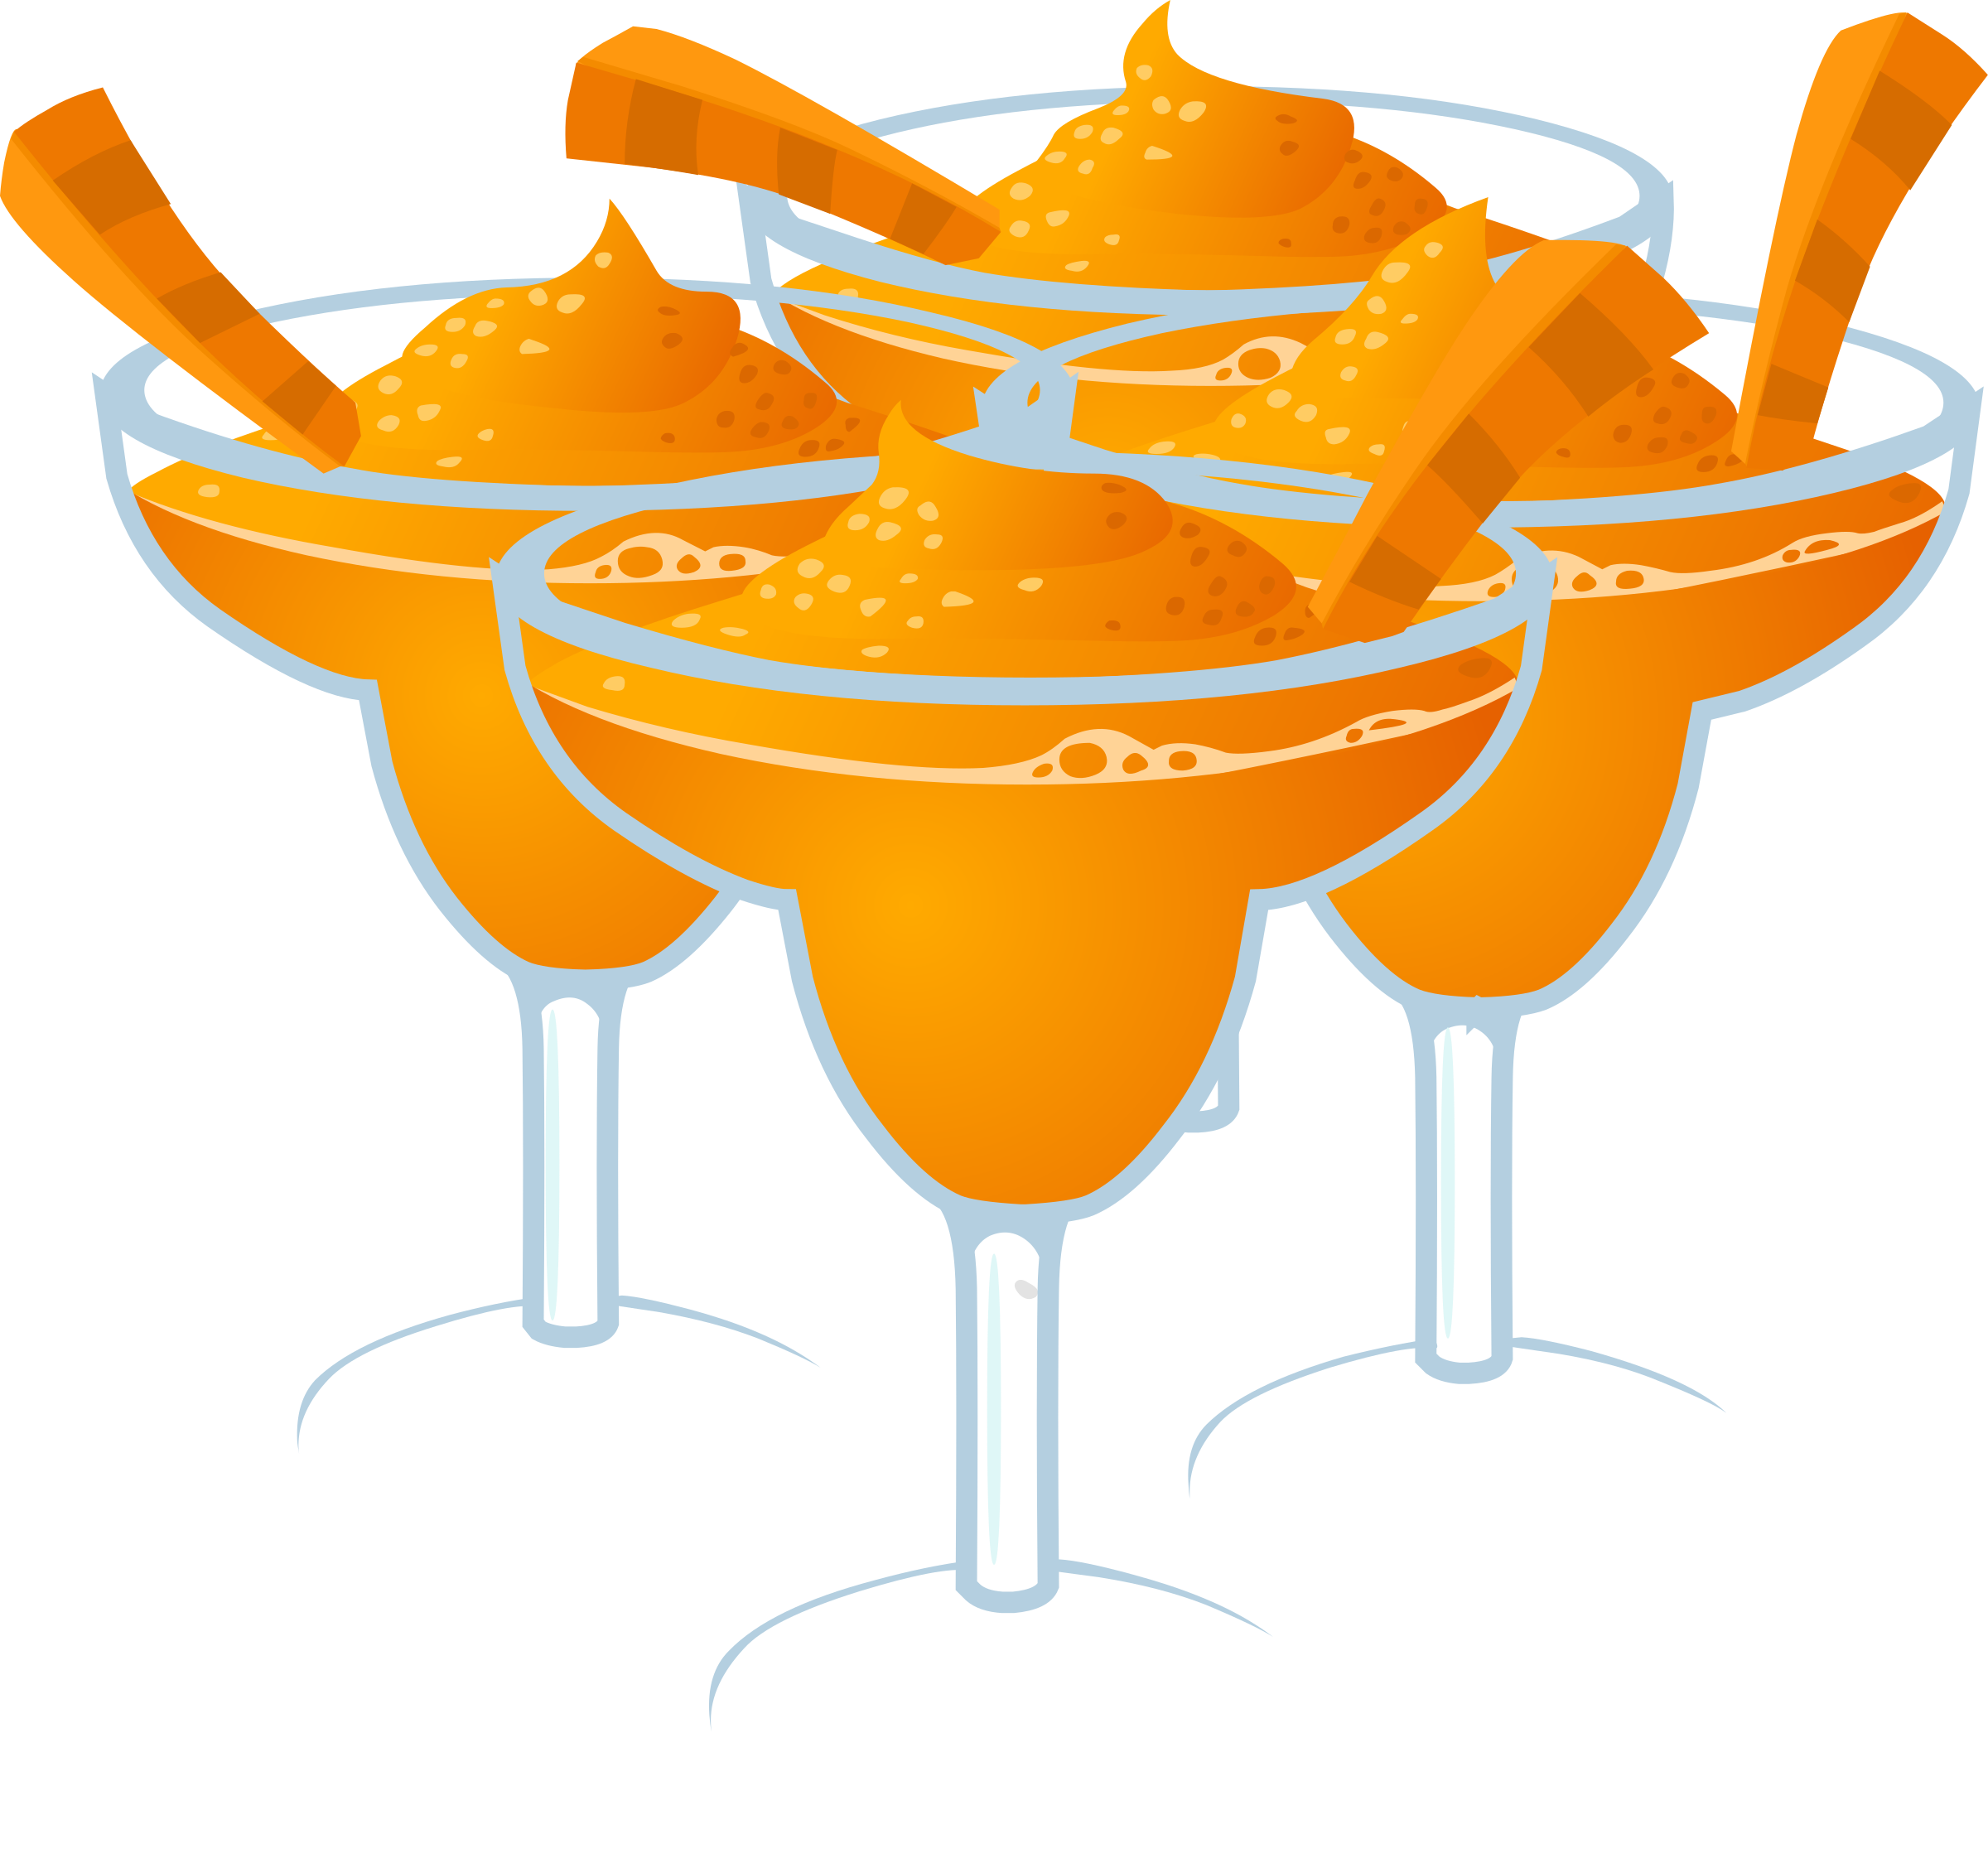 svg library stock Drink carrot icons png. Margarita clipart vector.